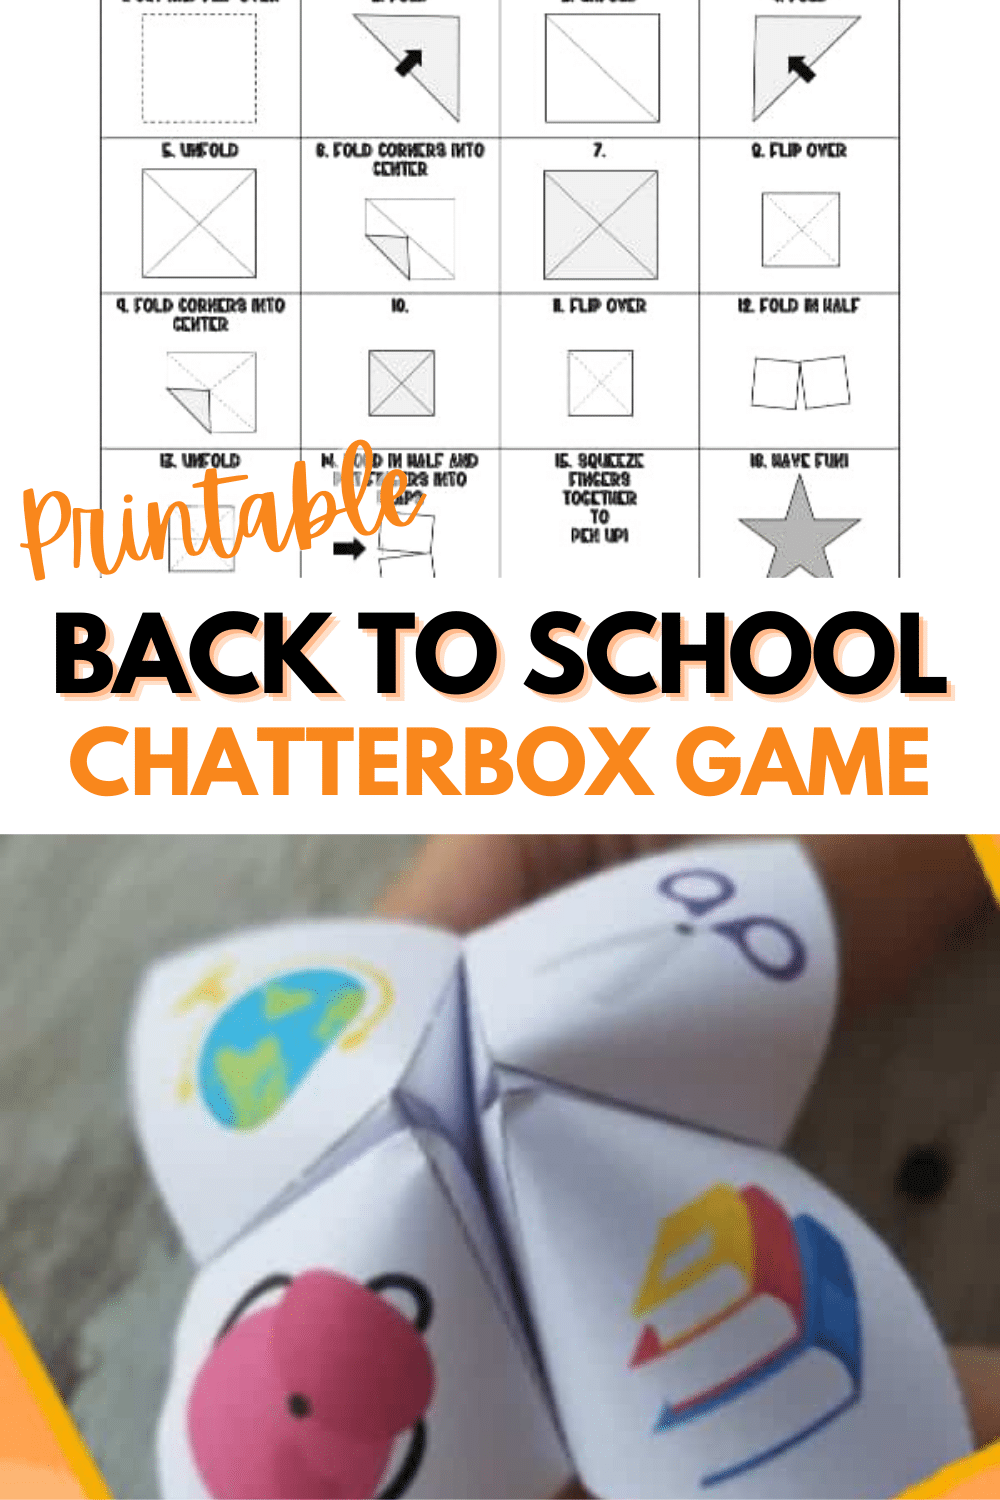 A printable back to school chatterbox game is a fun way to start the school year. This game is a great conversation starter to get kids talking. #printables #backtoschool #chatterboxgame via @wondermomwannab